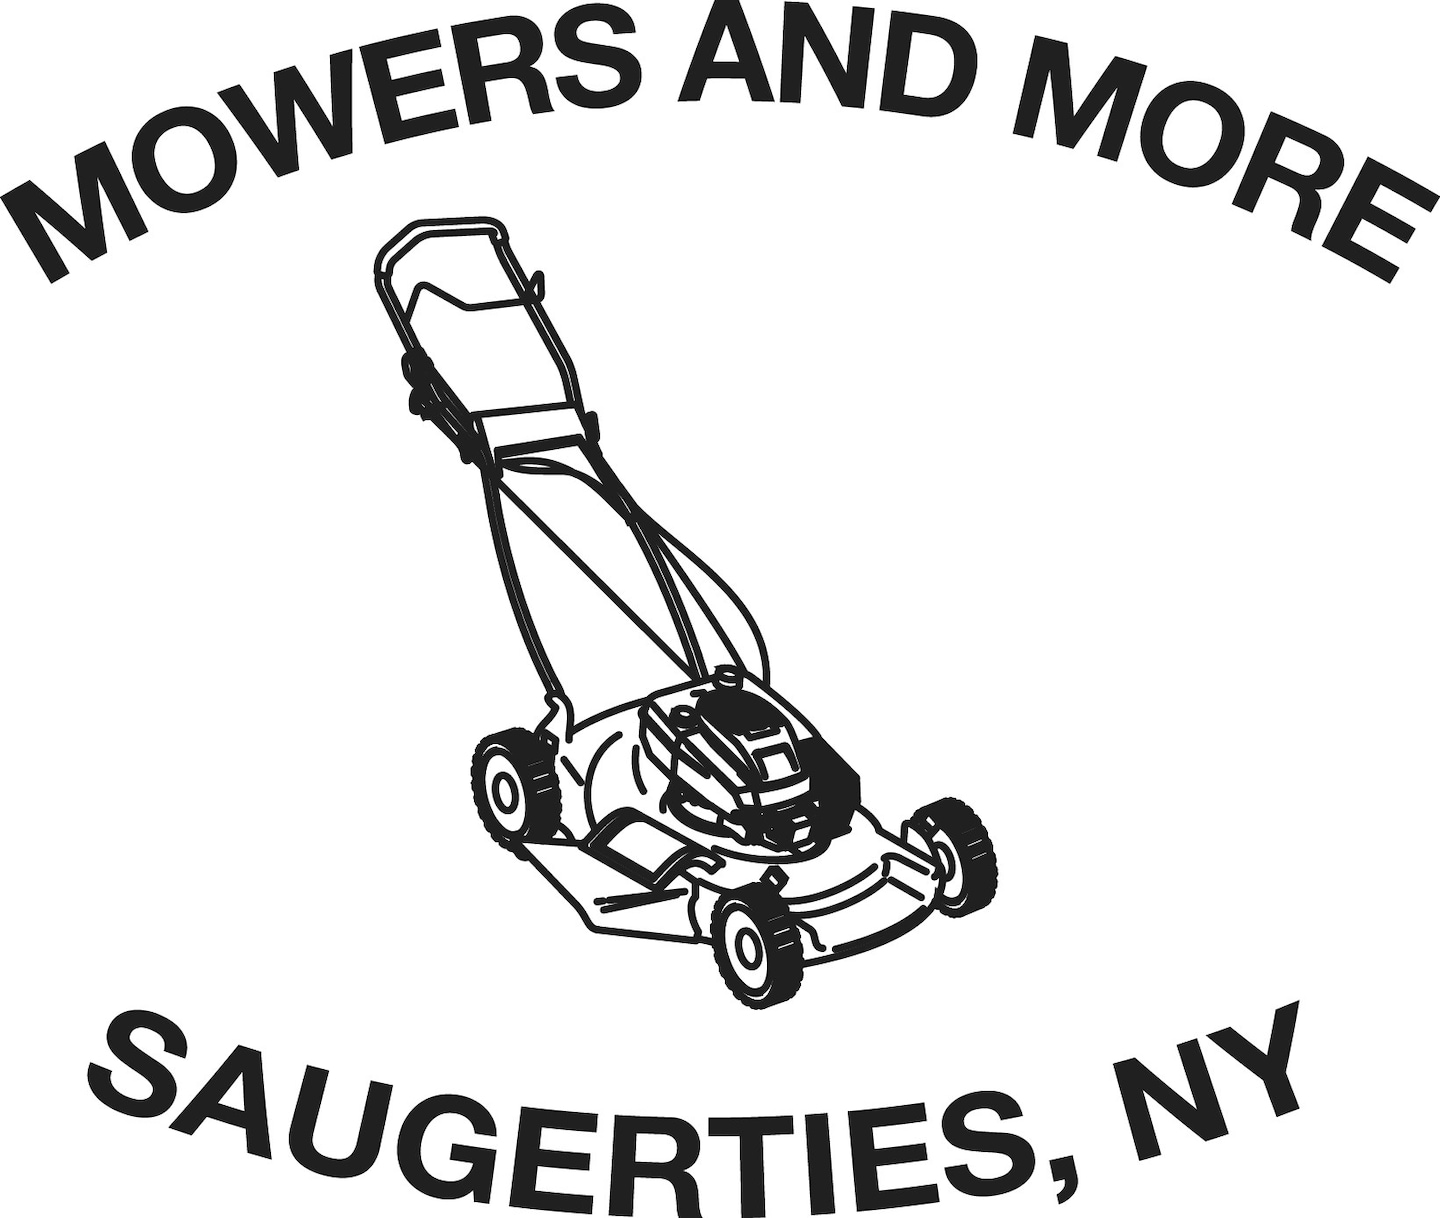 The Mower Depot, Inc. dba Mowers and More